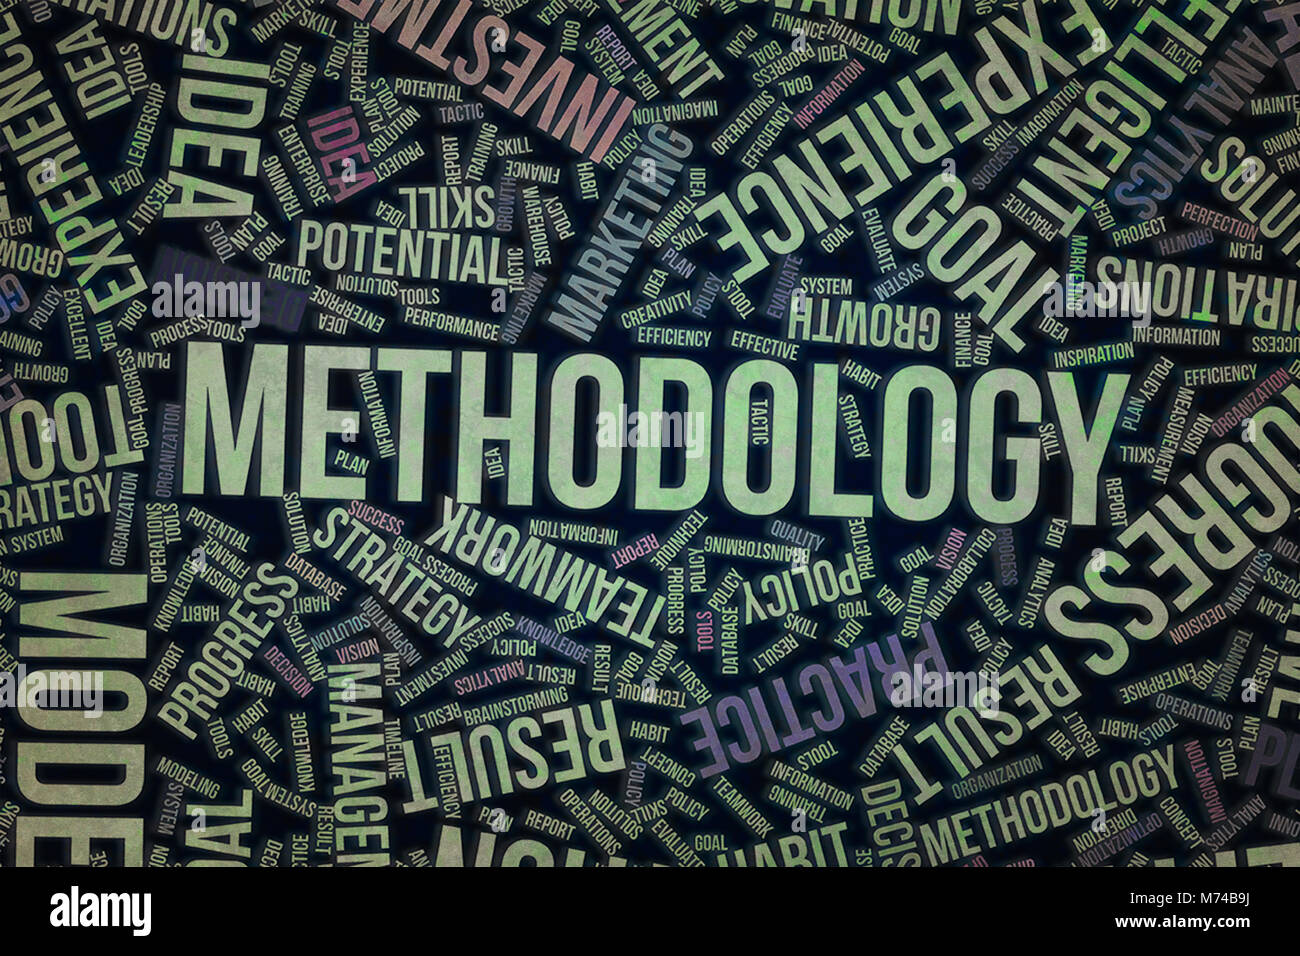 Methodology, business conceptual word cloud for for design wallpaper, texture or background, grunge & rough - Stock Image